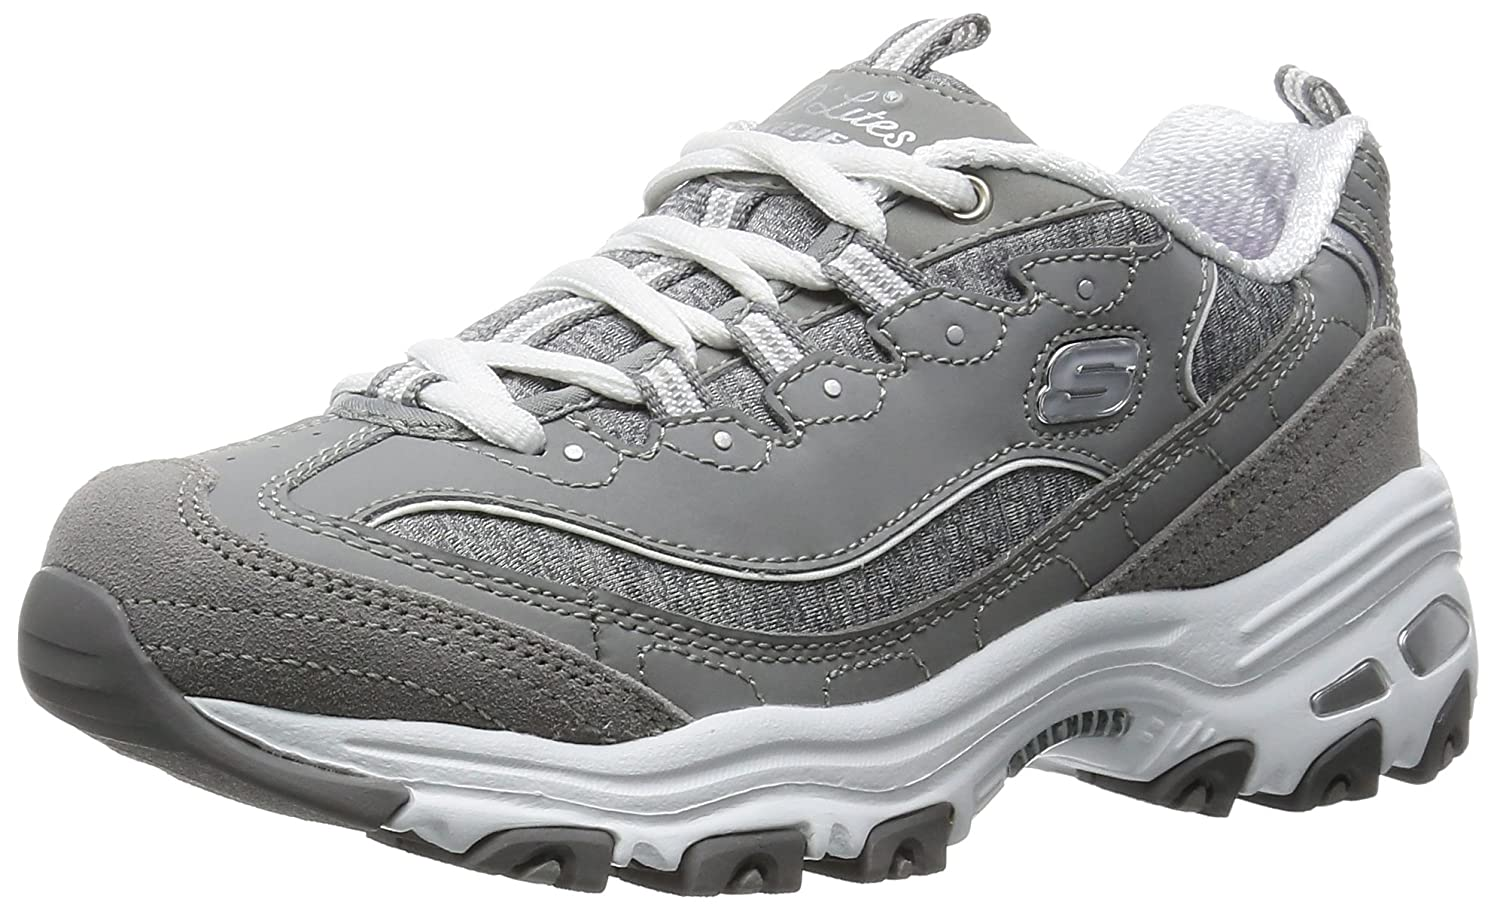 Skechers Women's D'Lites Memory Foam Lace-up Sneaker B014GN5HEU 9 B(M) US|Grey/White